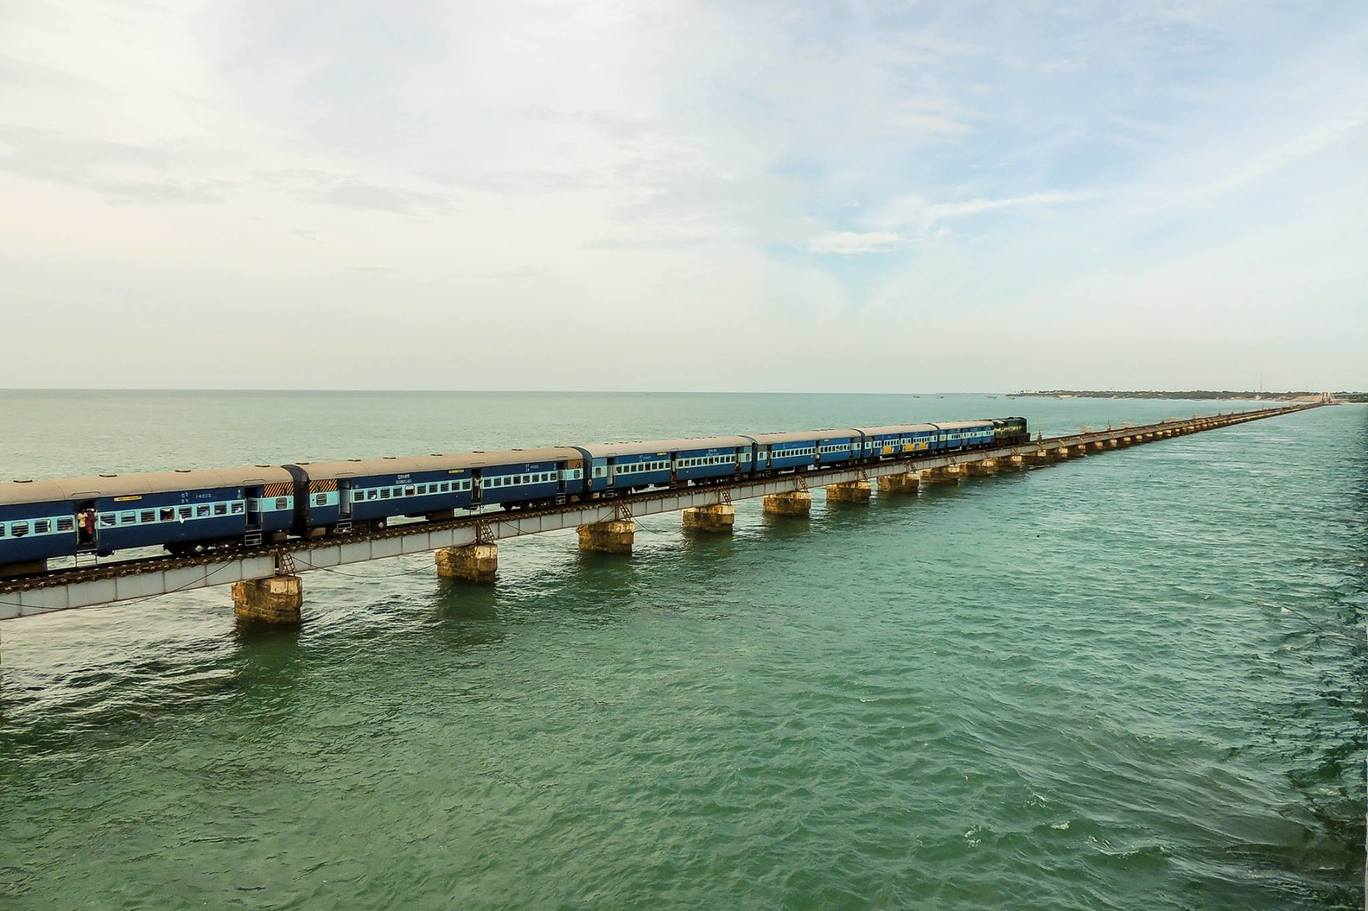 Photo of Pampan Palam - Rameswaram #splendorJourneys By Ebin Ephrem Elavathingal